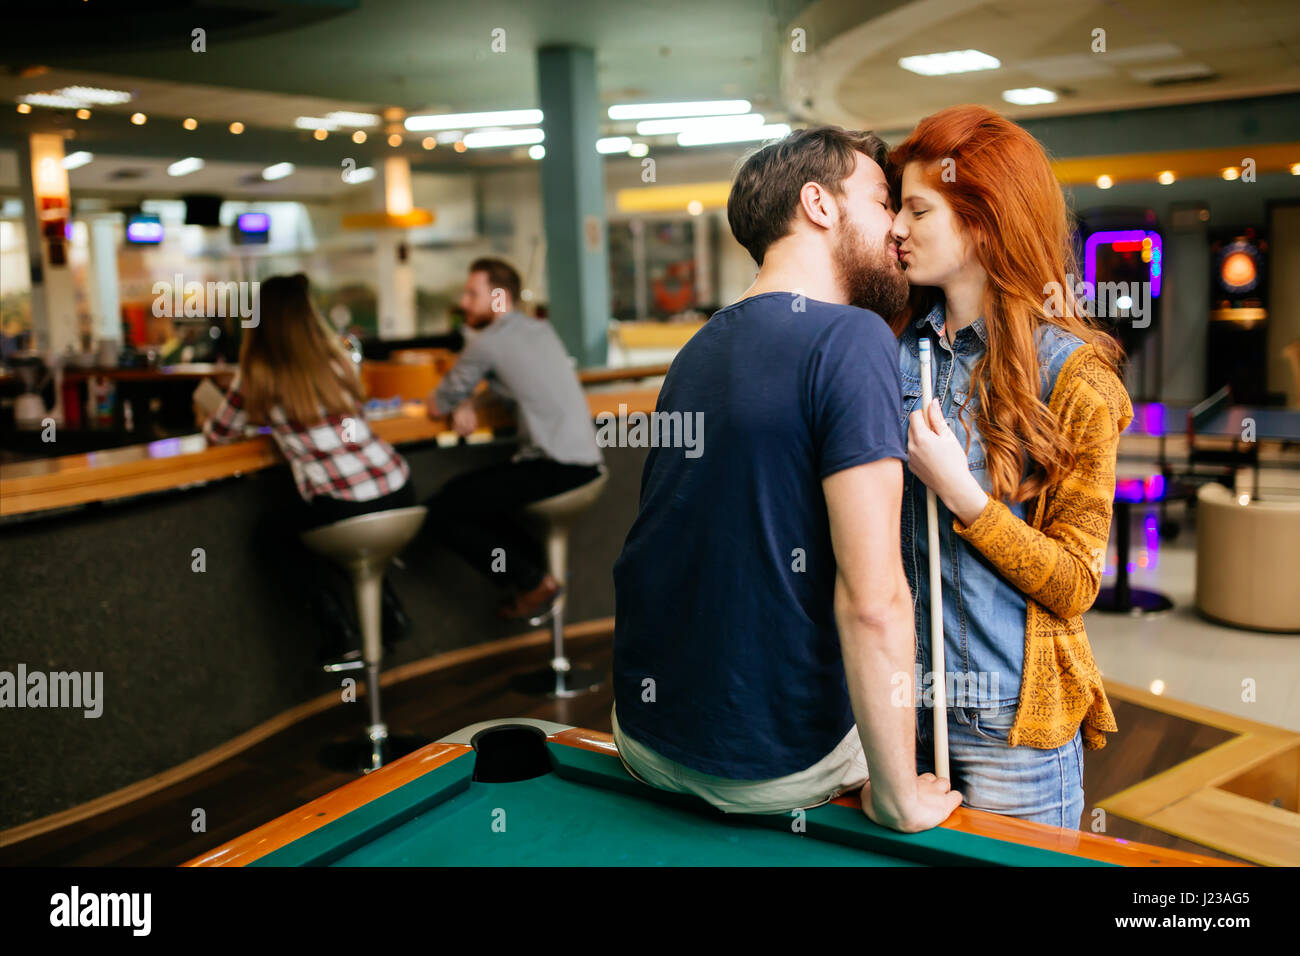 Beautiful couple kissing in billiards bar on their date - Stock Image